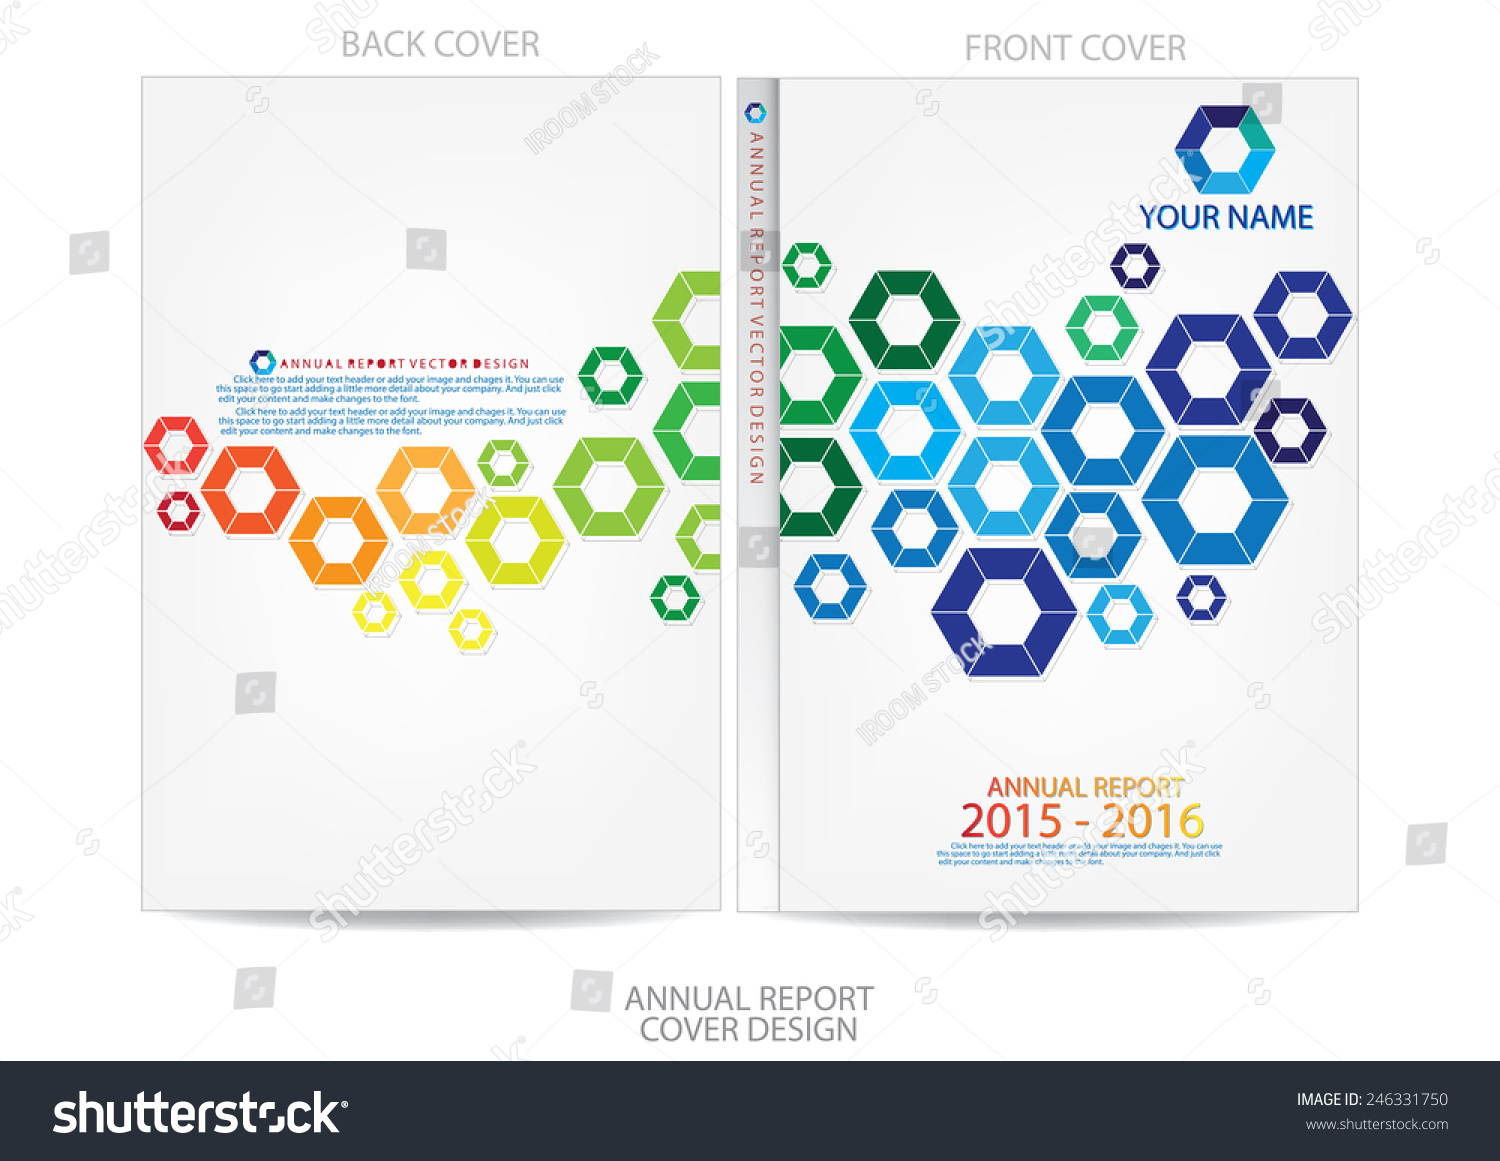 report cover laveyla com annual report cover design stock vector 246331750 shutterstock